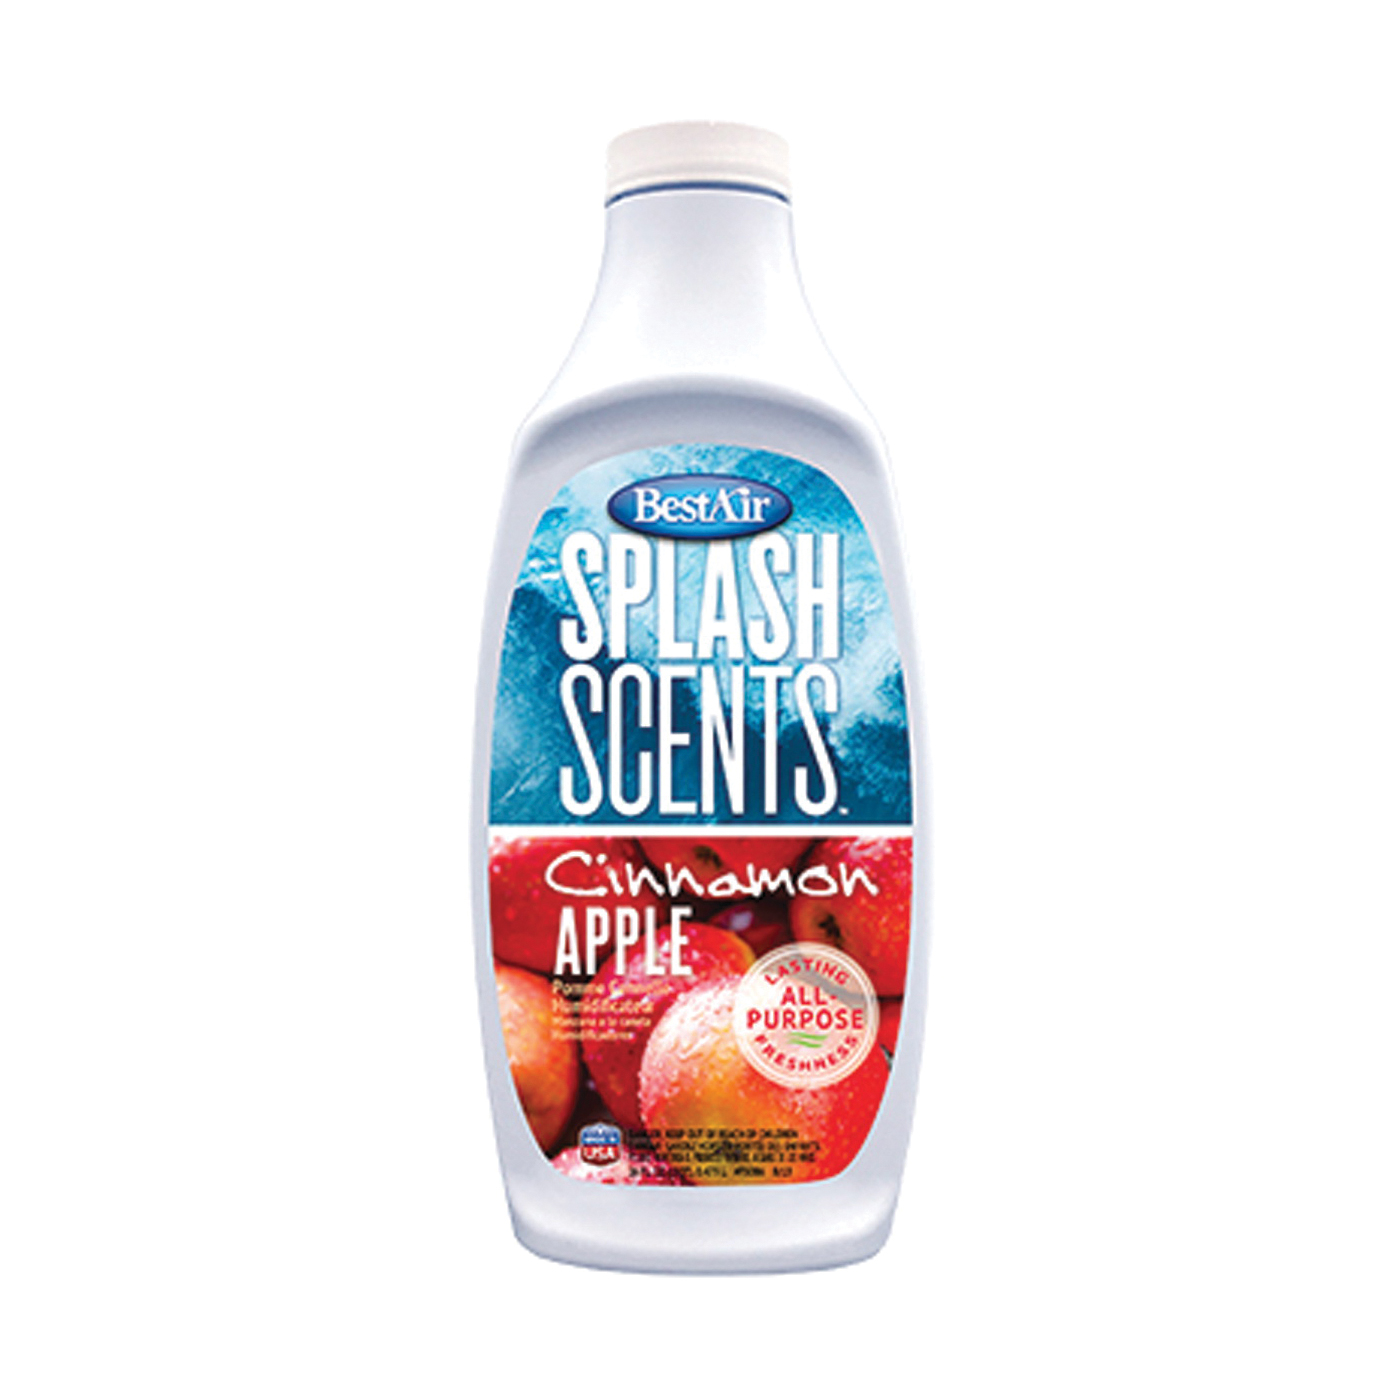 Picture of BestAir FSCA6 Humidifier Scents, Apple Cinnamon, 16 oz Package, Bottle